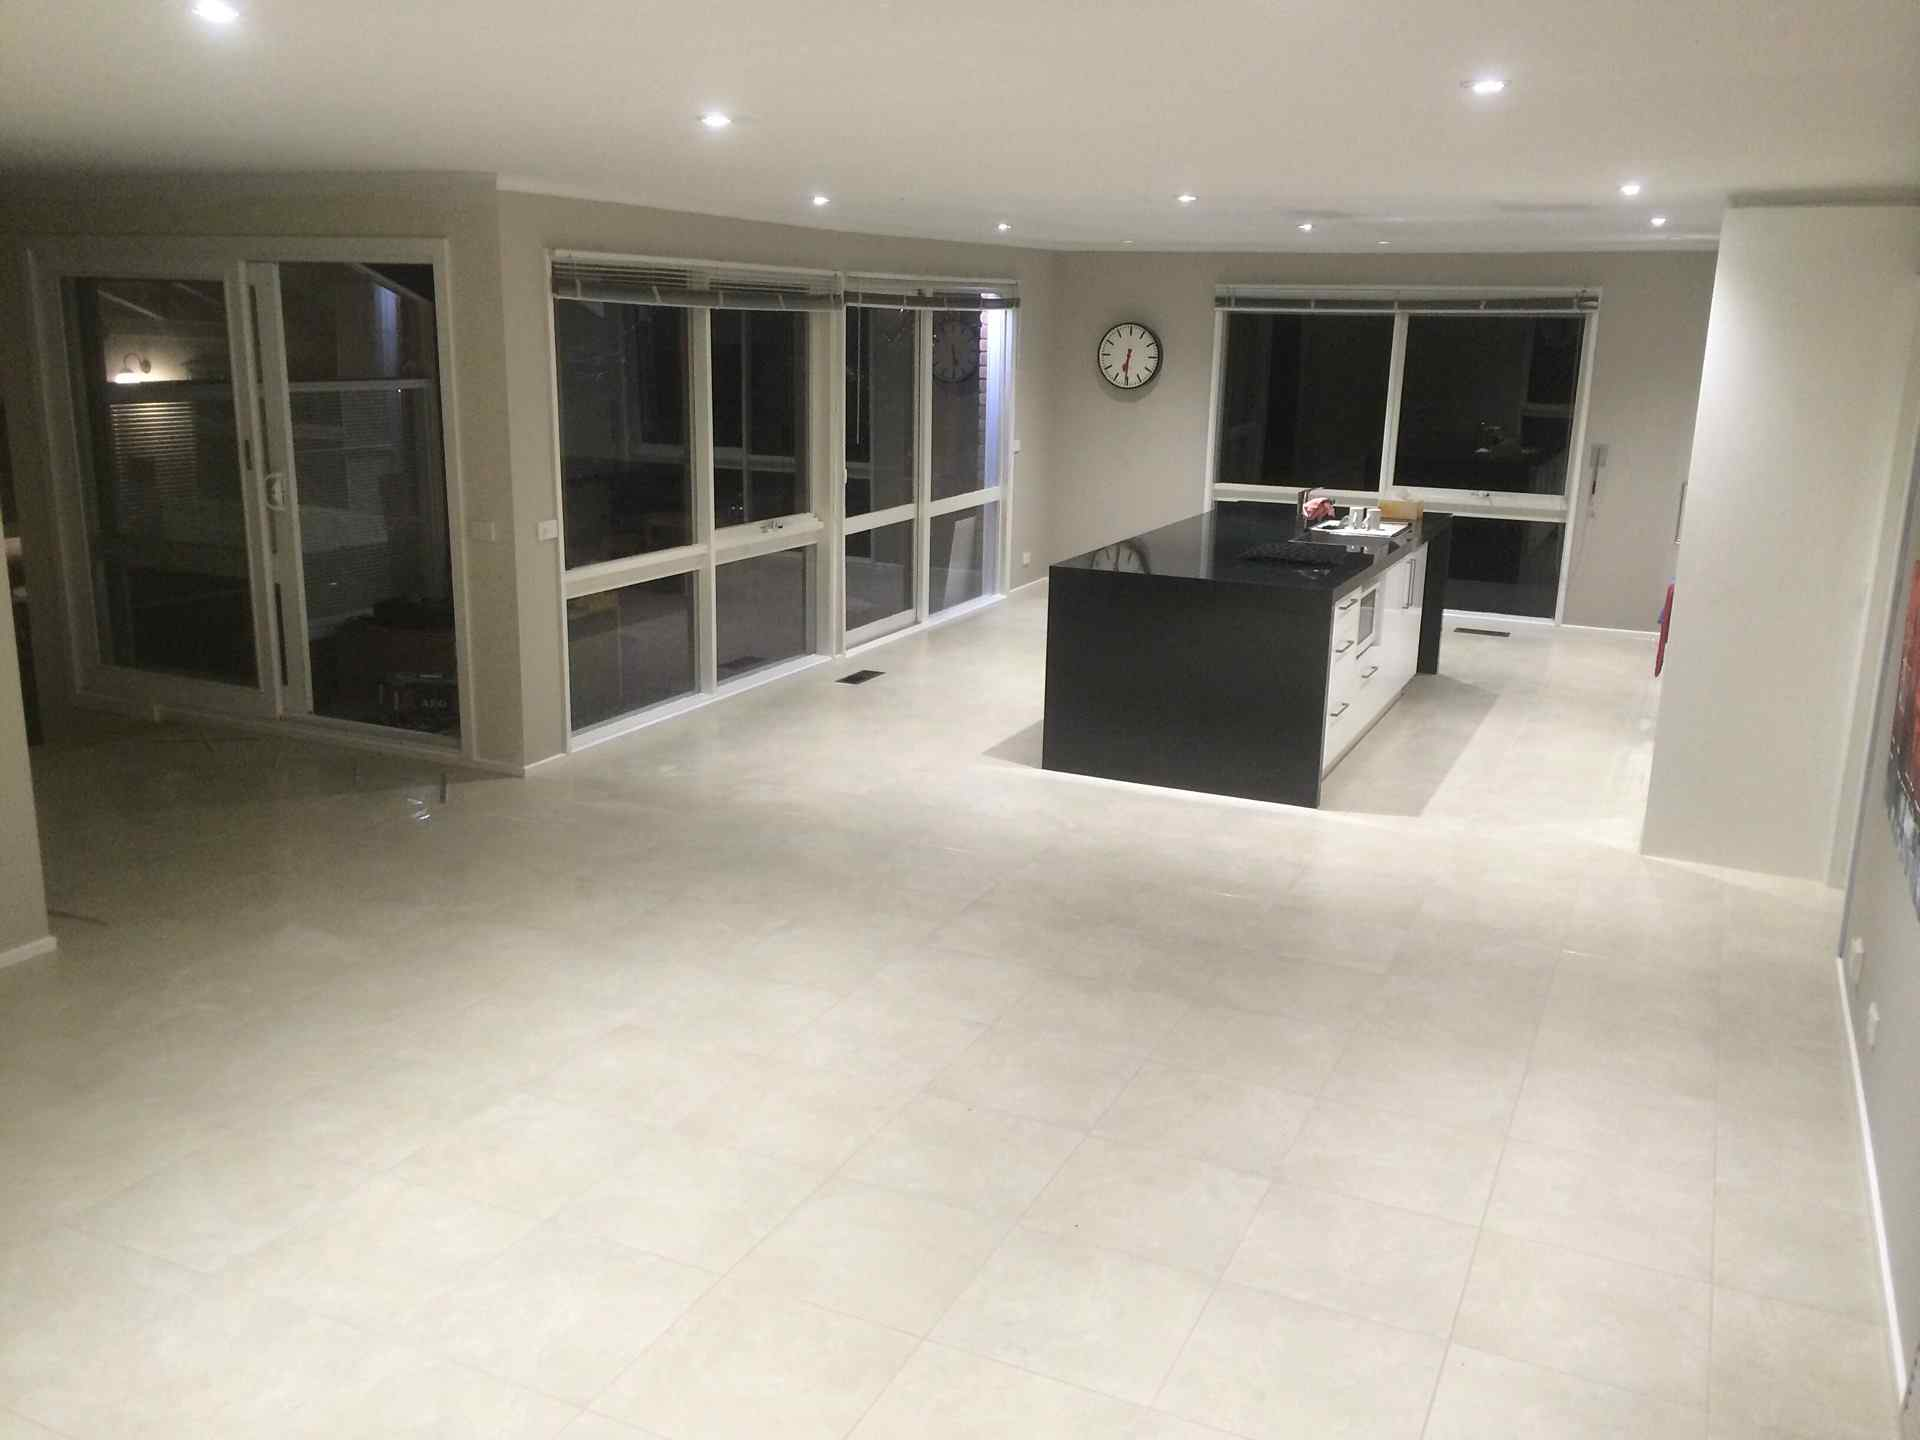 C s wall and floor tiling chris stenhouse 9 projects 450x450 ceramic tiles on a 60m2 floor rowville vic dailygadgetfo Gallery